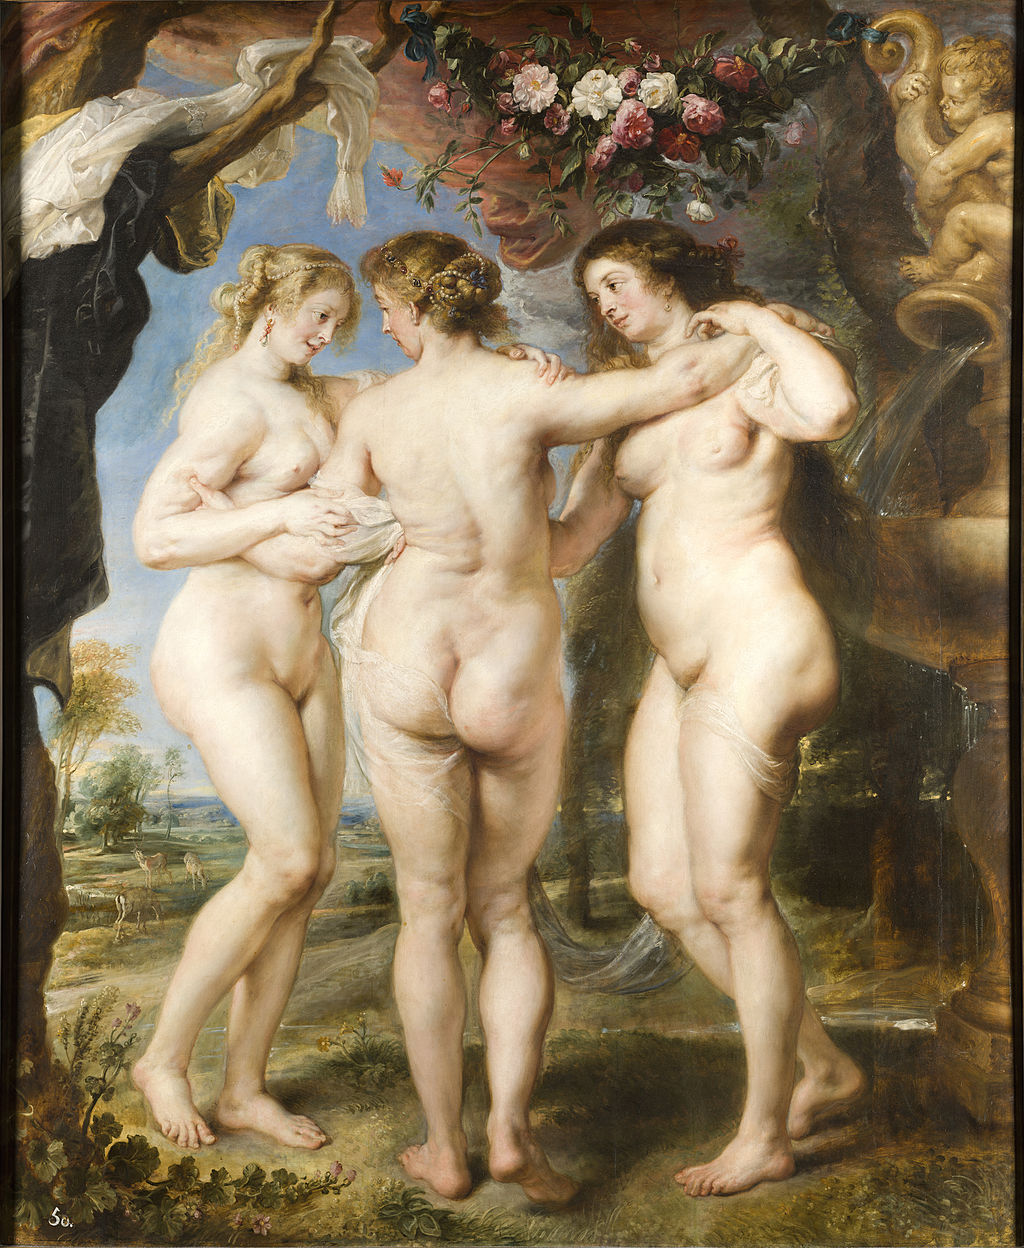 1024px-The_Three_Graces,_by_Peter_Paul_Rubens,_from_Prado_in_Google_Earth